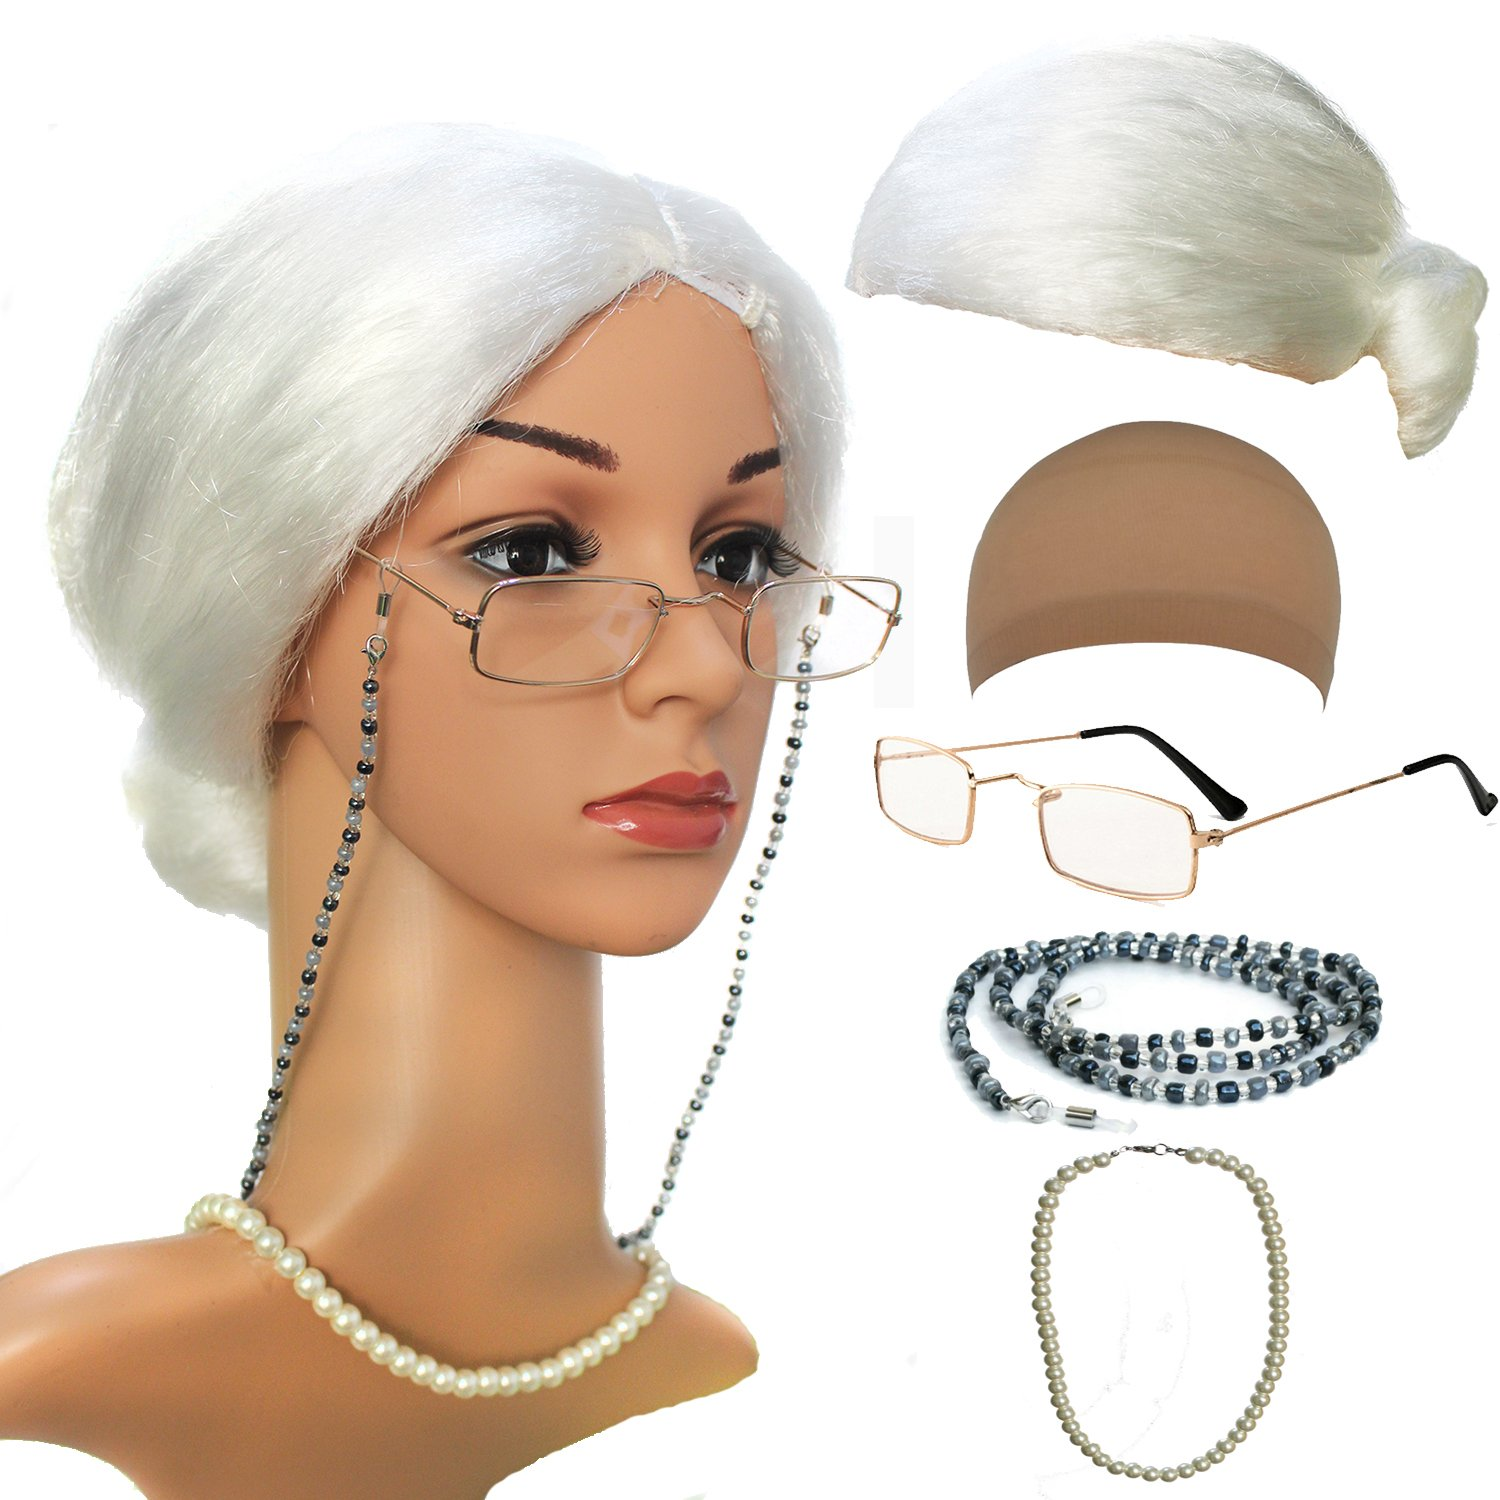 Old Lady Cosplay Set - Grandmother Wig, Wig Cap,Madea Granny Glasses, Eyeglass Chains Cords Strap, Pearl Beads qnprt Old Lady/Mrs. Santa Wig Madea Granny Glasses Style-1 OldLady-M1